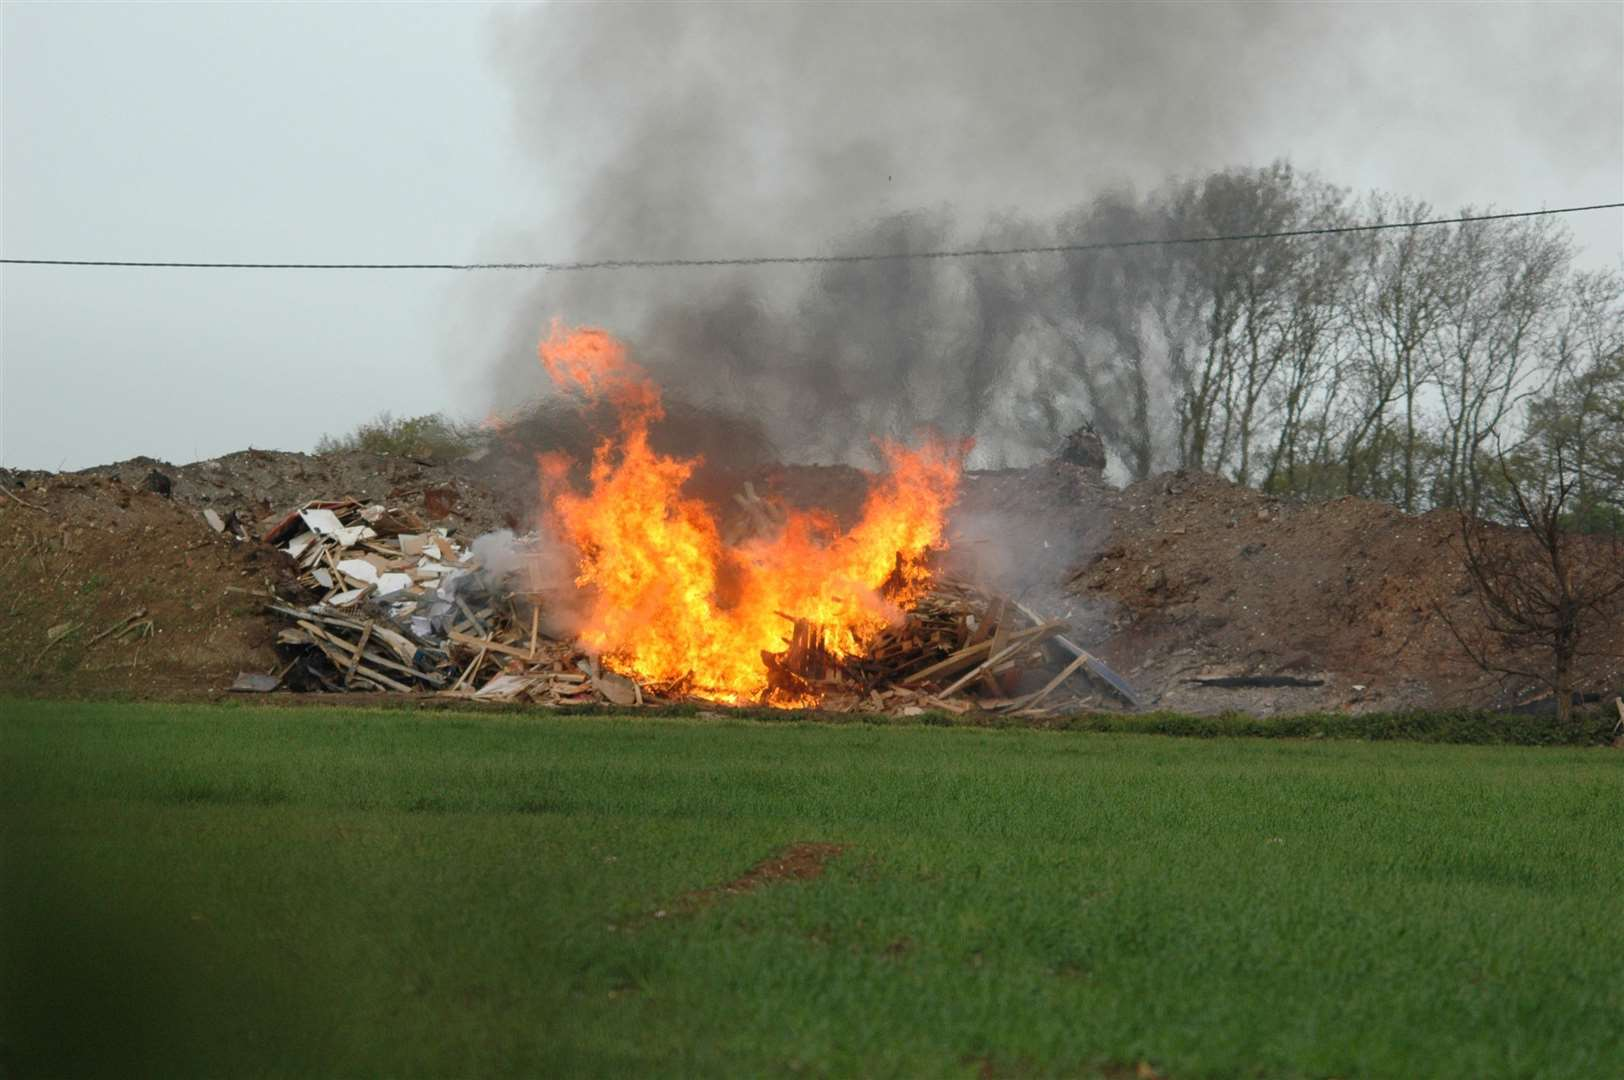 220,706 tonnes of rubbish were burned in Norfolk during 2017-18